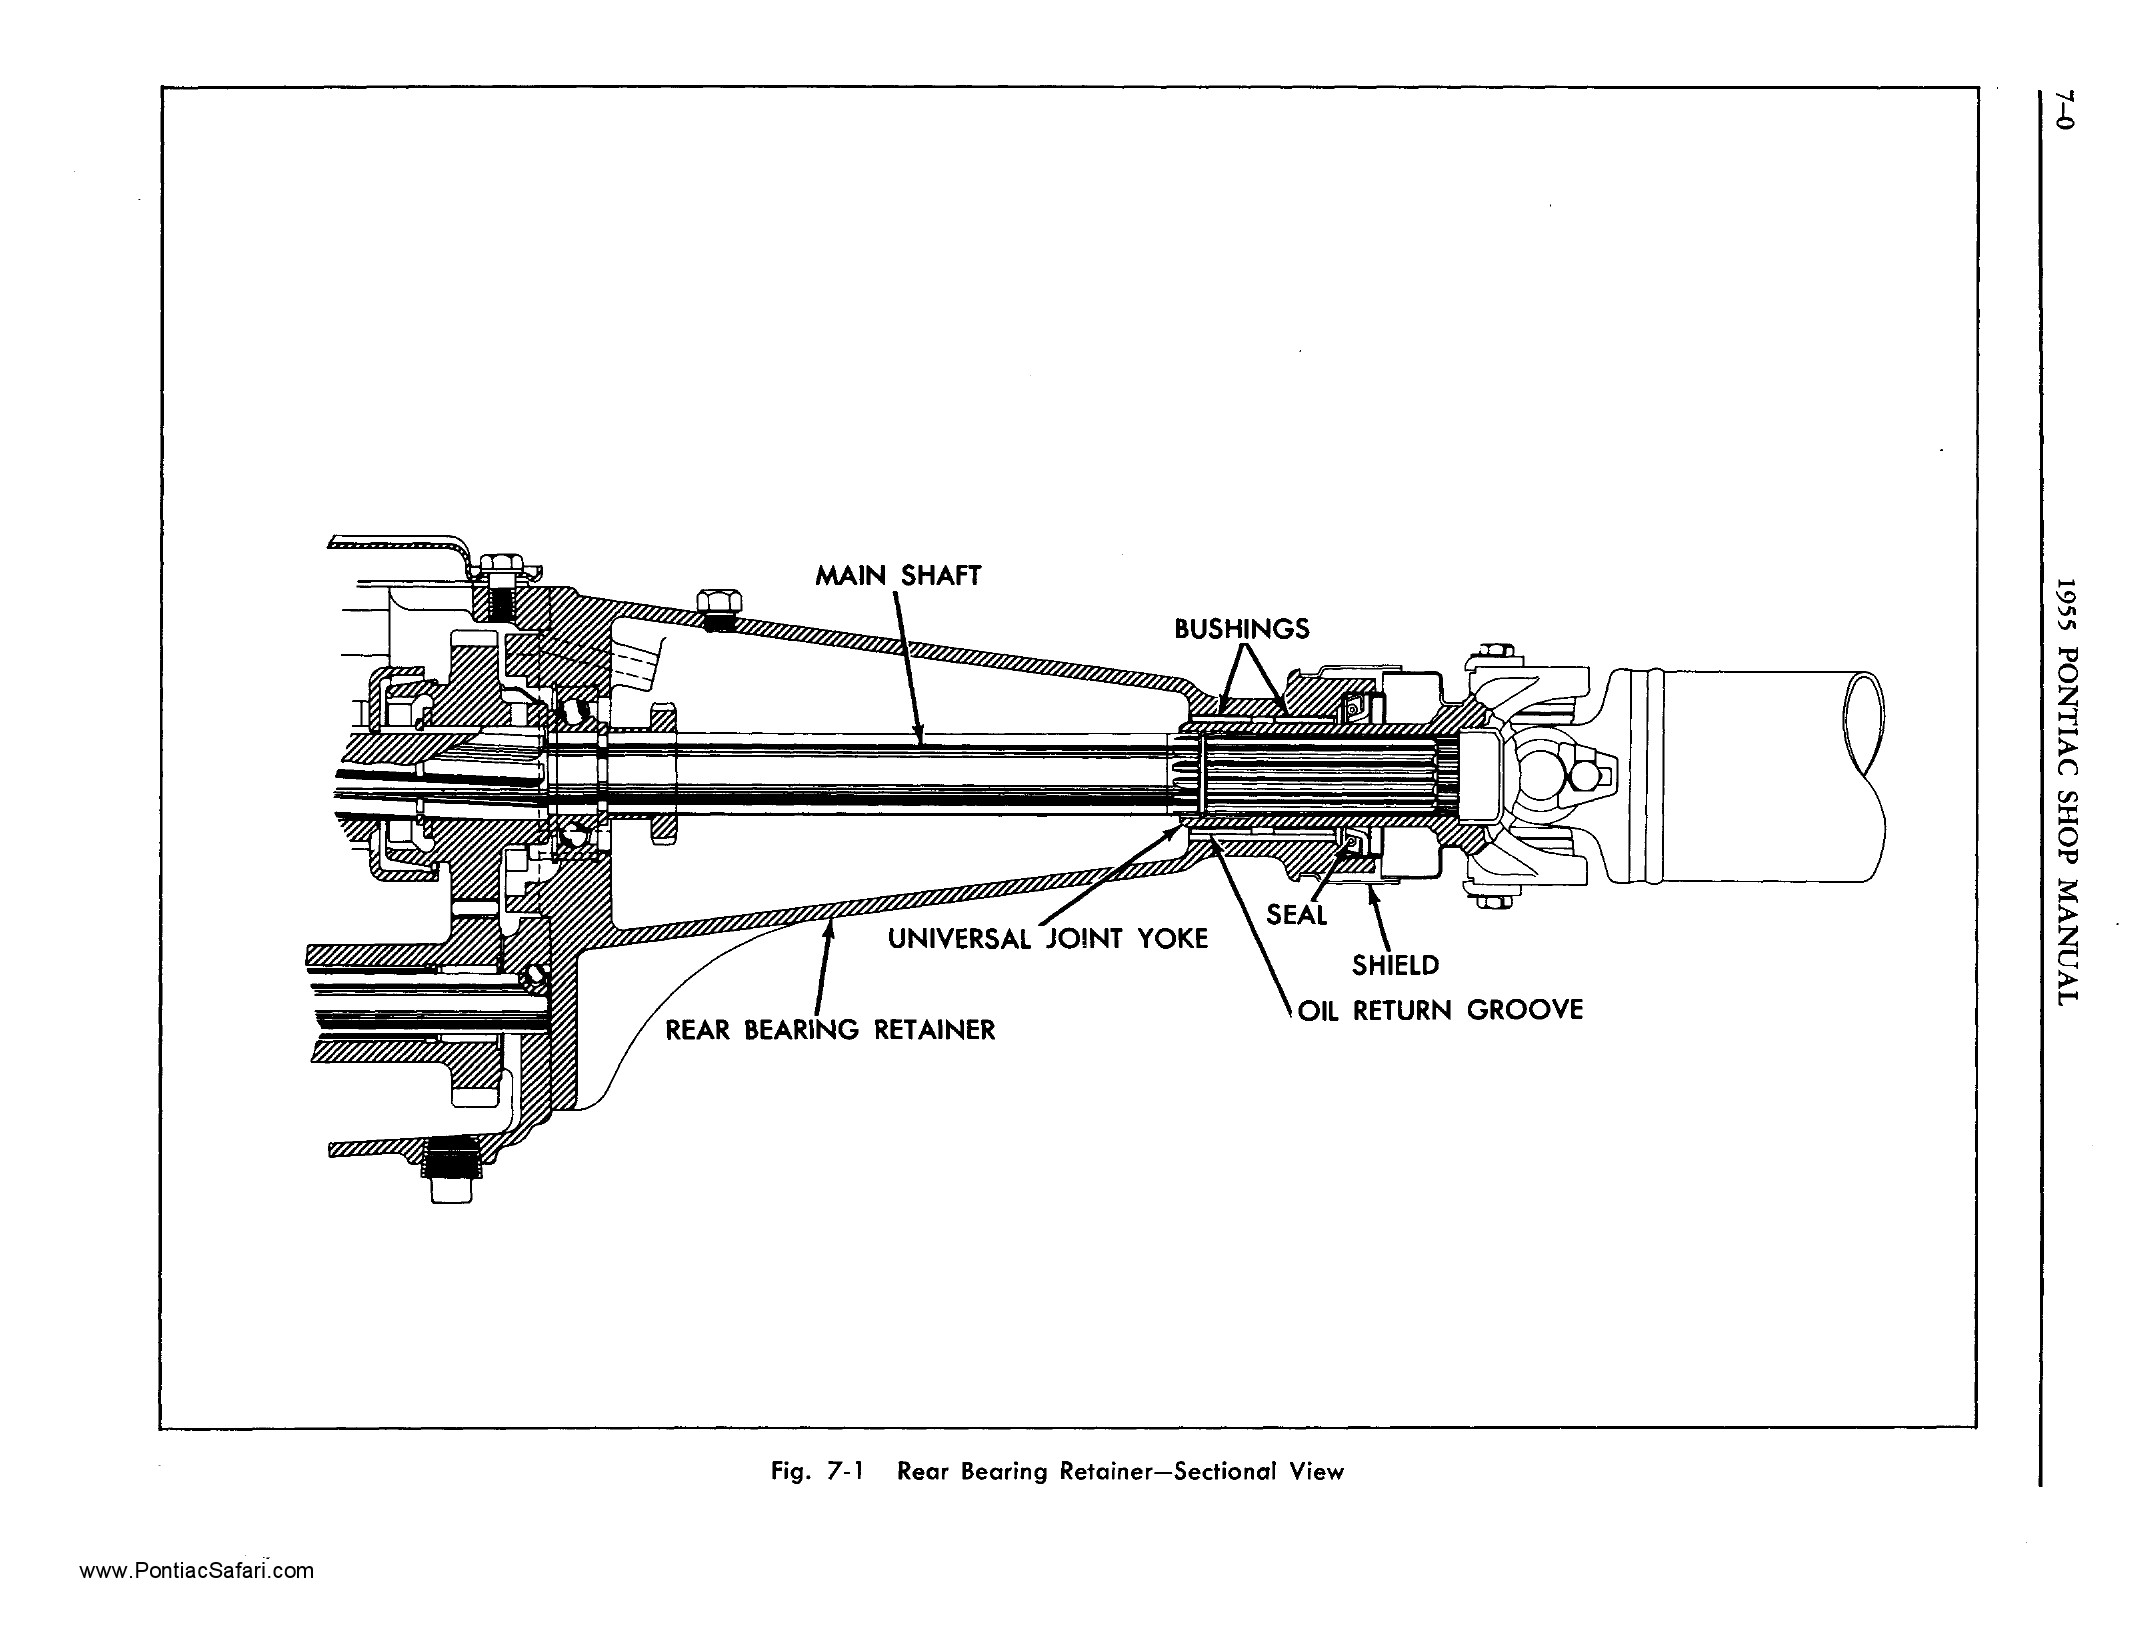 1955 Pontiac Shop Manual- Transmission and Gearshift